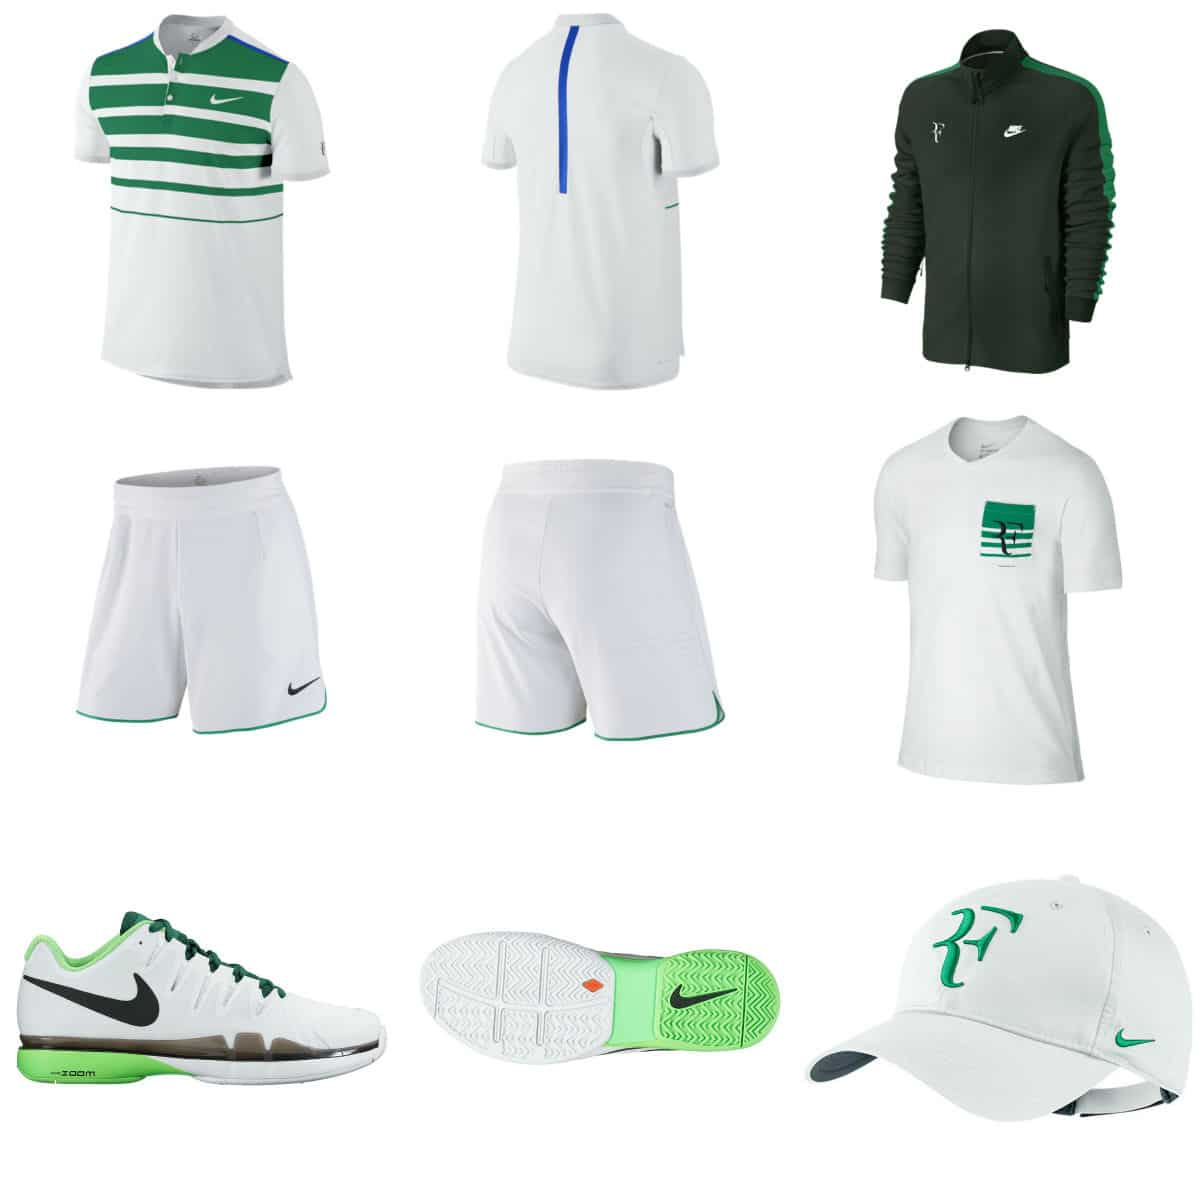 be162a89b640c Roger Federer s Outfit for the Australian Open 2016 - peRFect Tennis